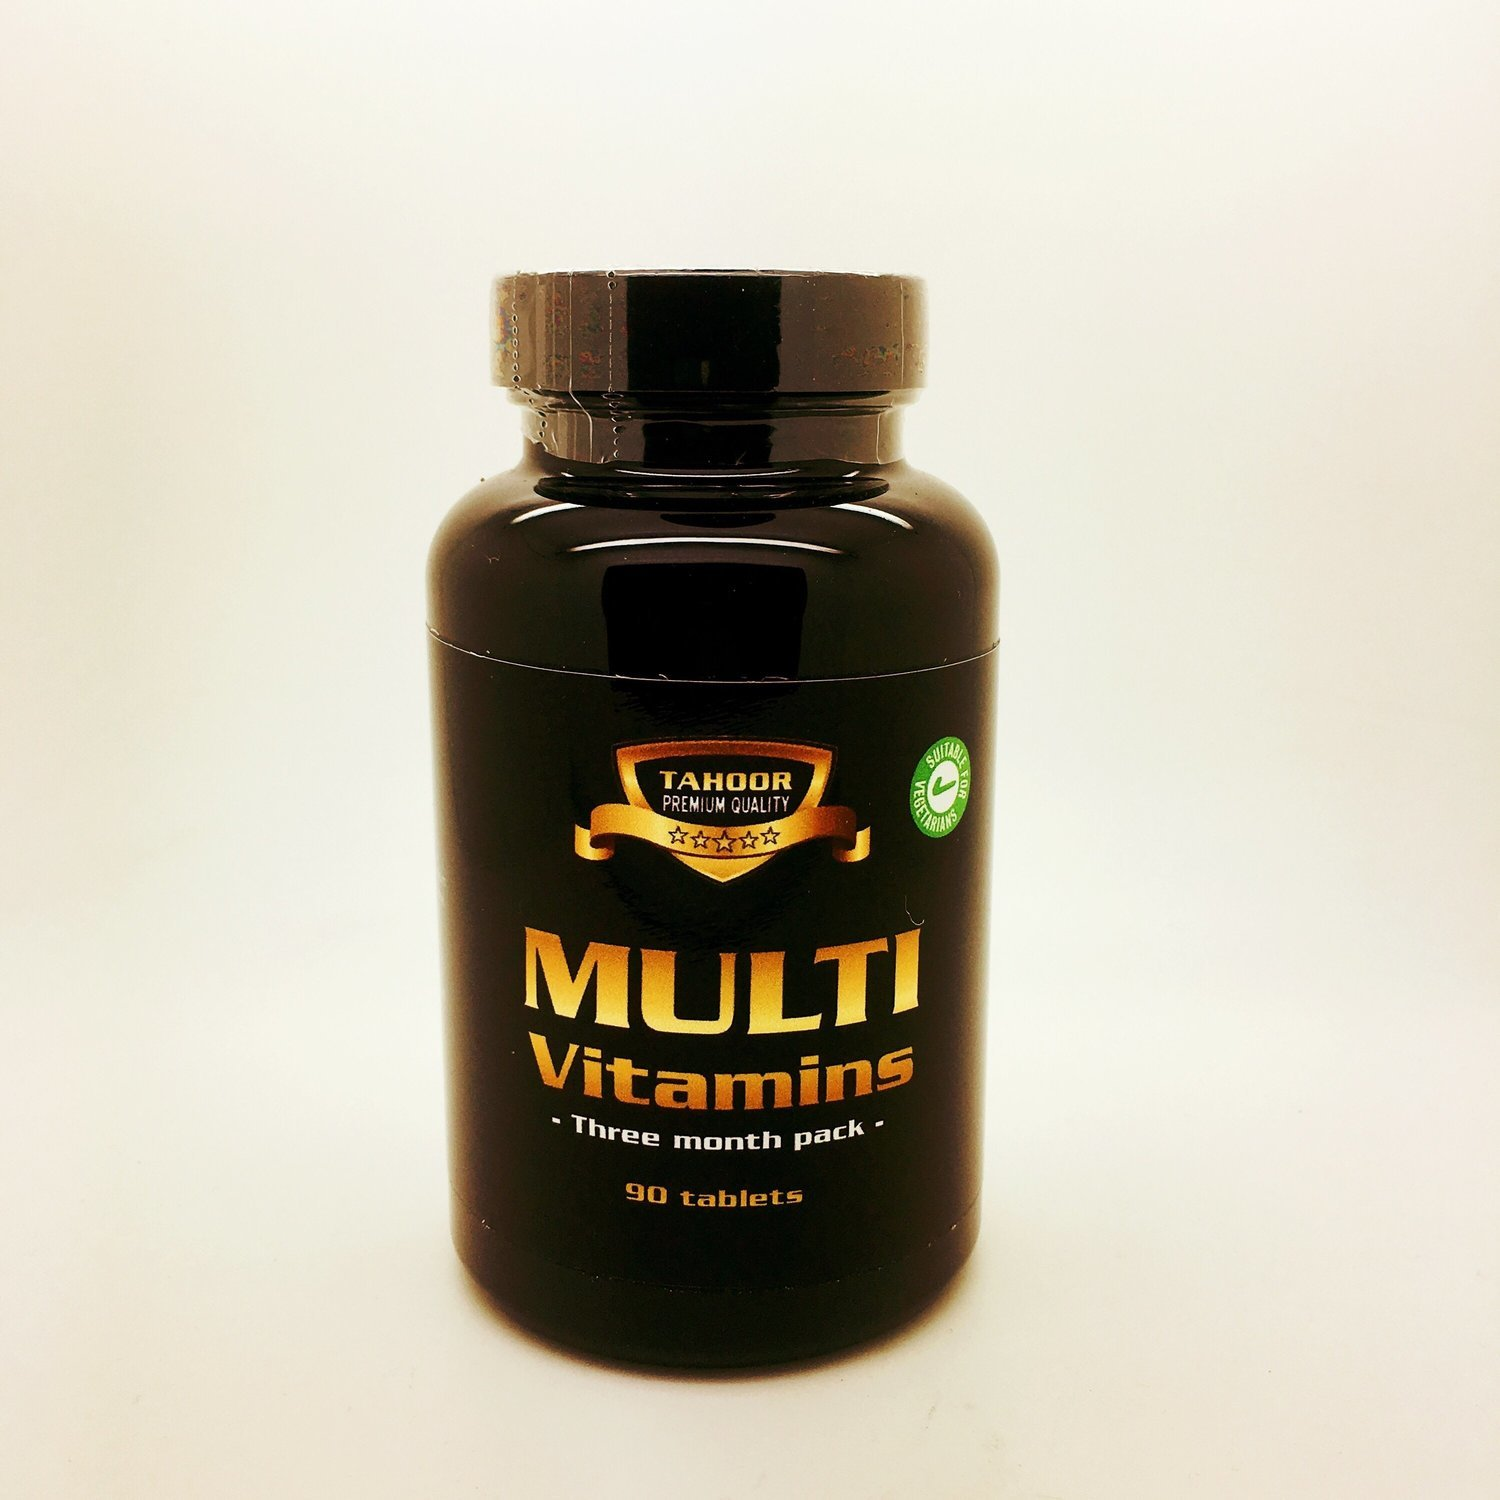 Multivitamins (90 tablets) - 3 month supply